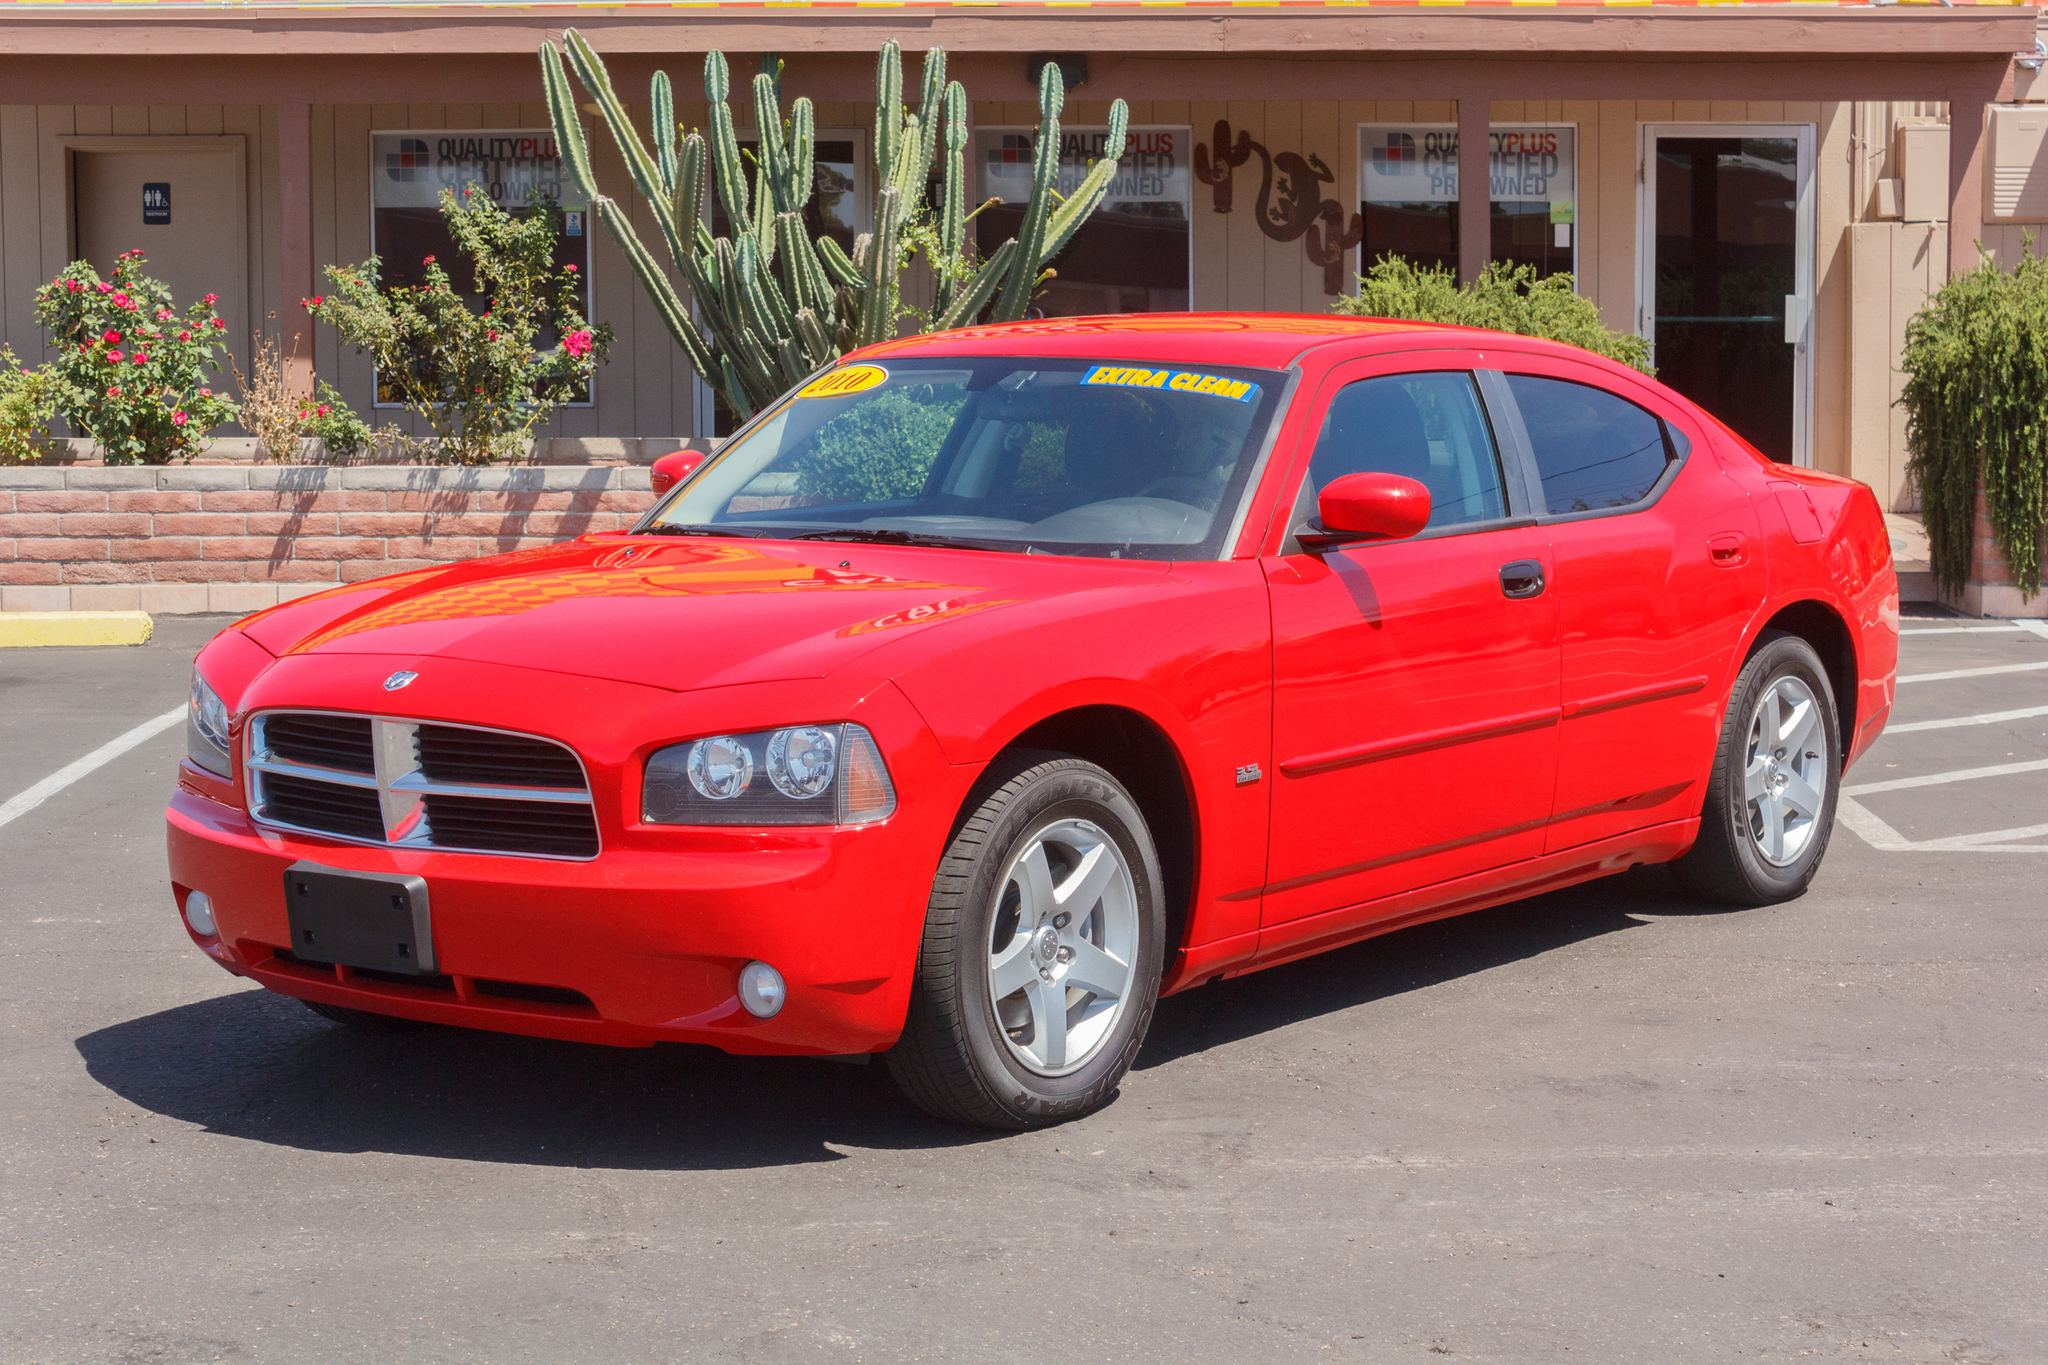 Photo of 2010 Dodge Charger 4d Sedan SXT Torred